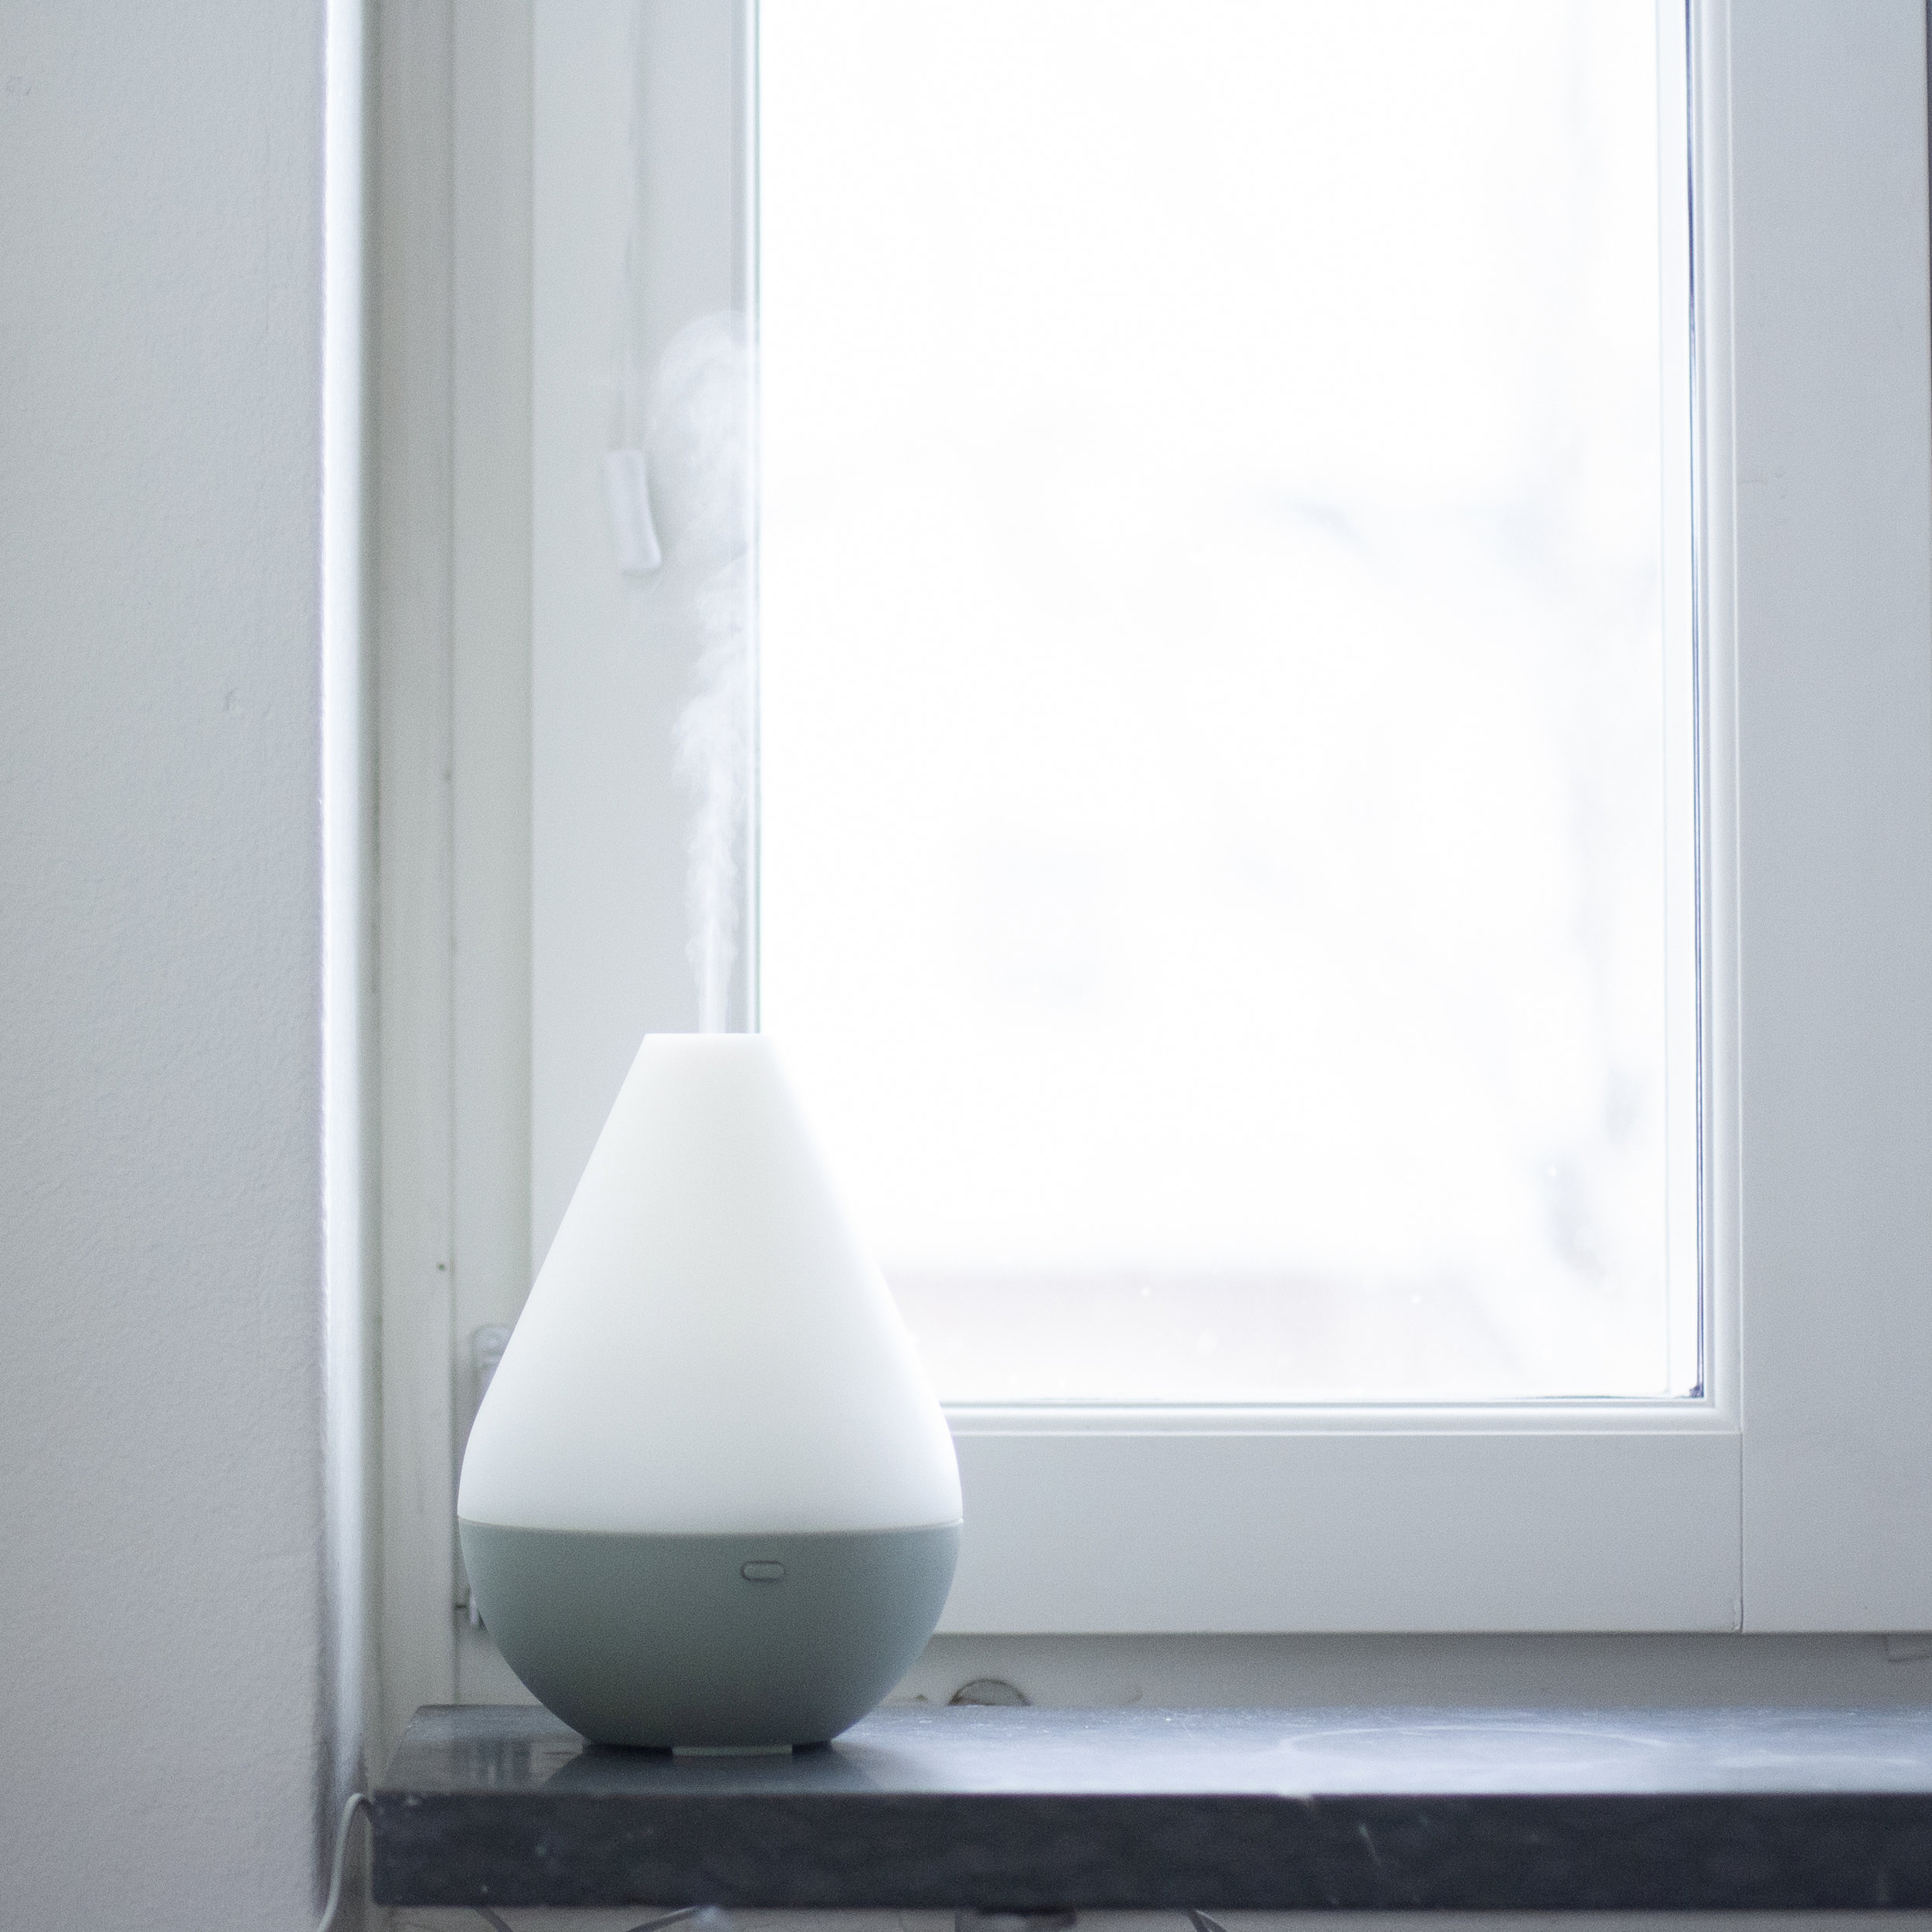 Get an aroma diffuser